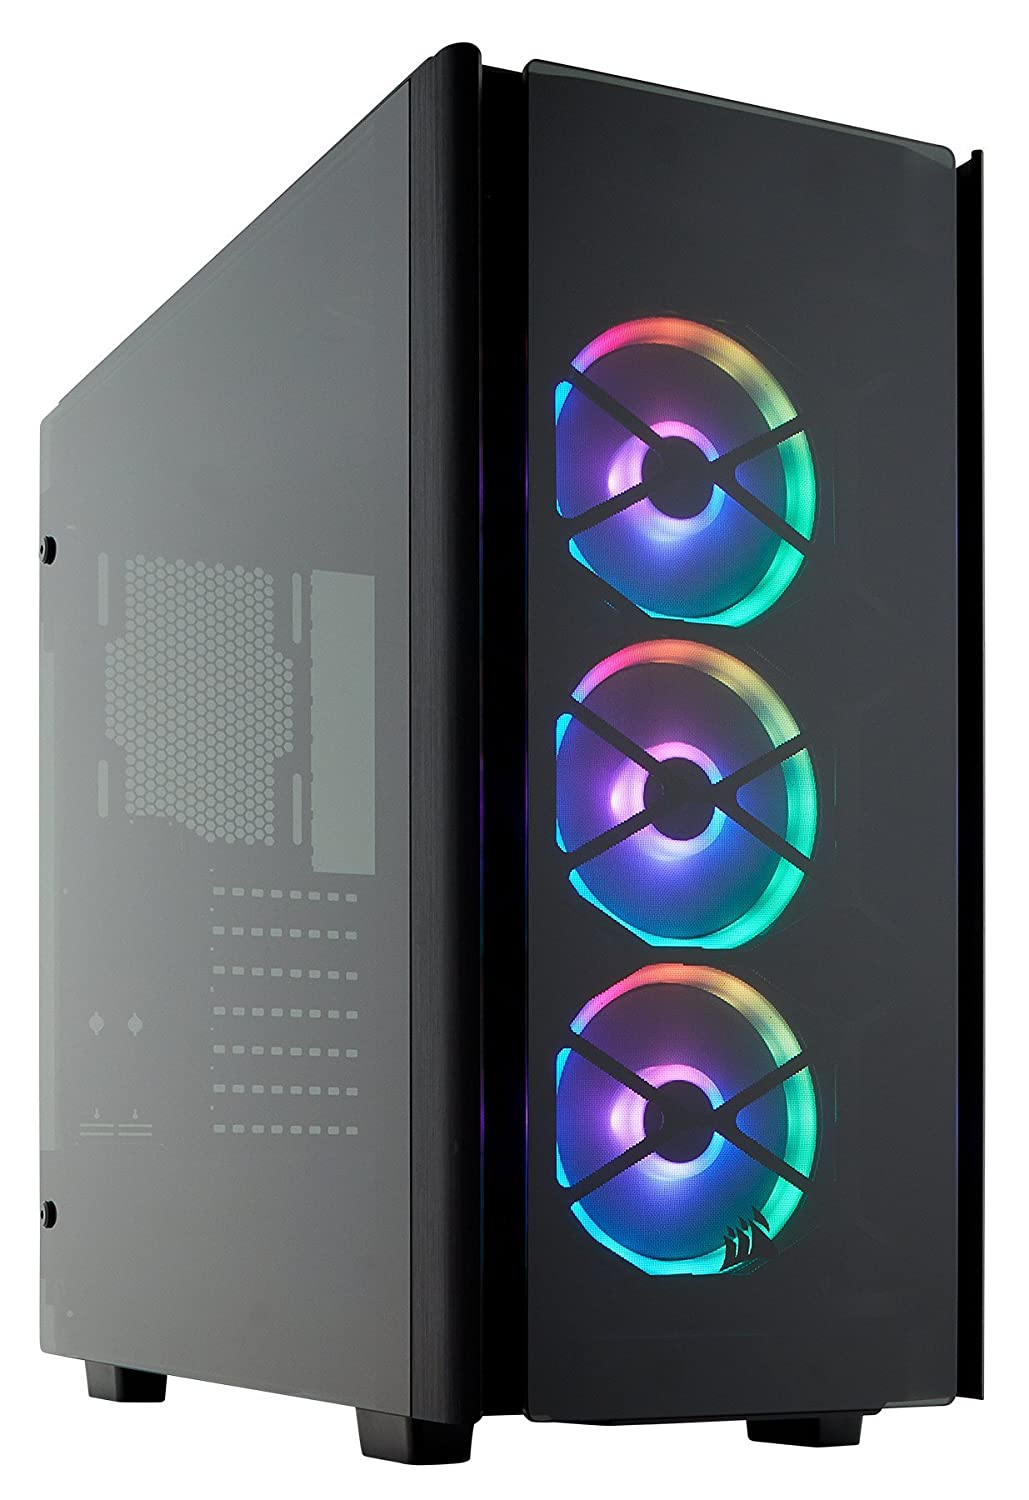 CORSAIR Obsidian 500D RGB SE Mid-Tower Case, 3 RGB Fans, Smoked Tempered Glass, Aluminum Trim - Integrated Commander PRO Fan and Lighting Controller